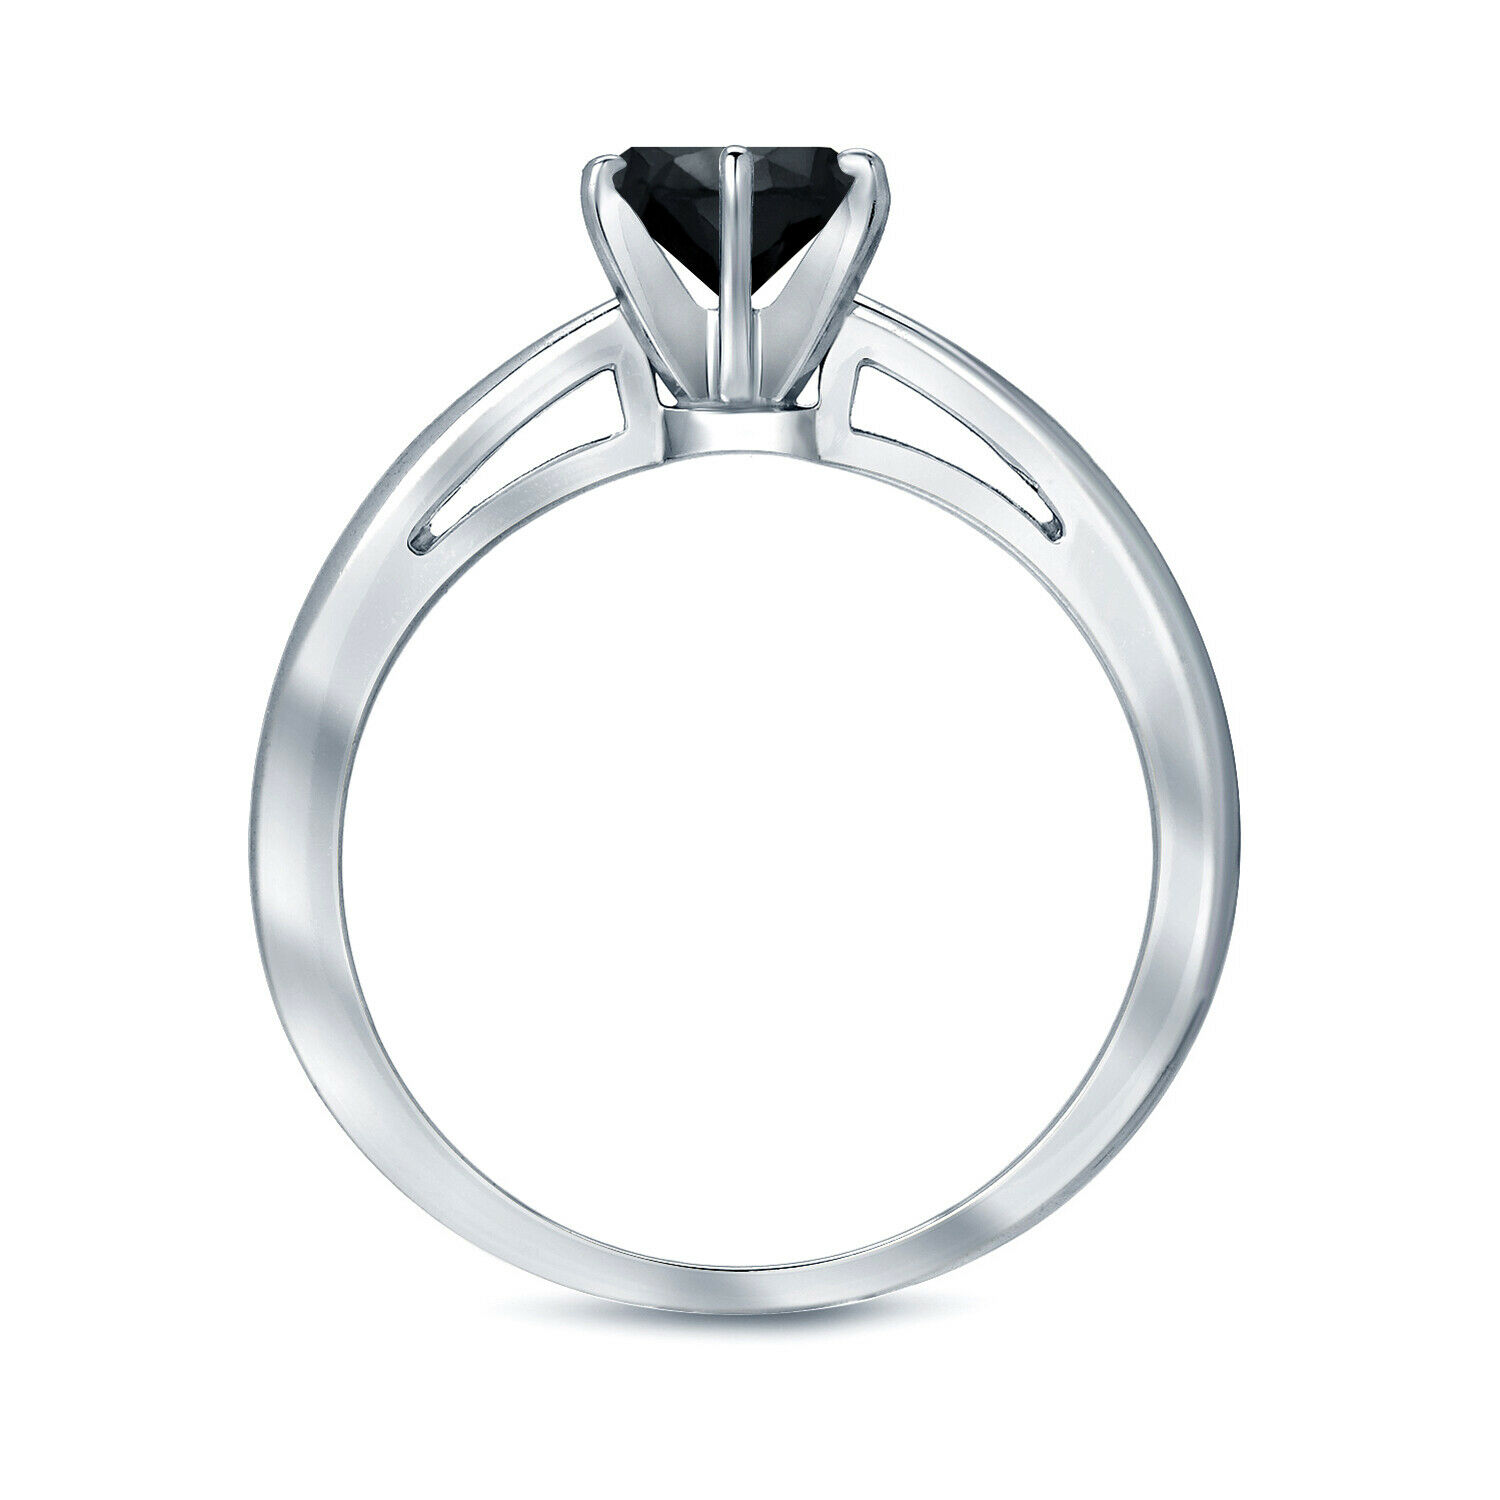 0.25 CT BLACK DIAMOND ENGAGEMENT RING 14K WHITE GOLD